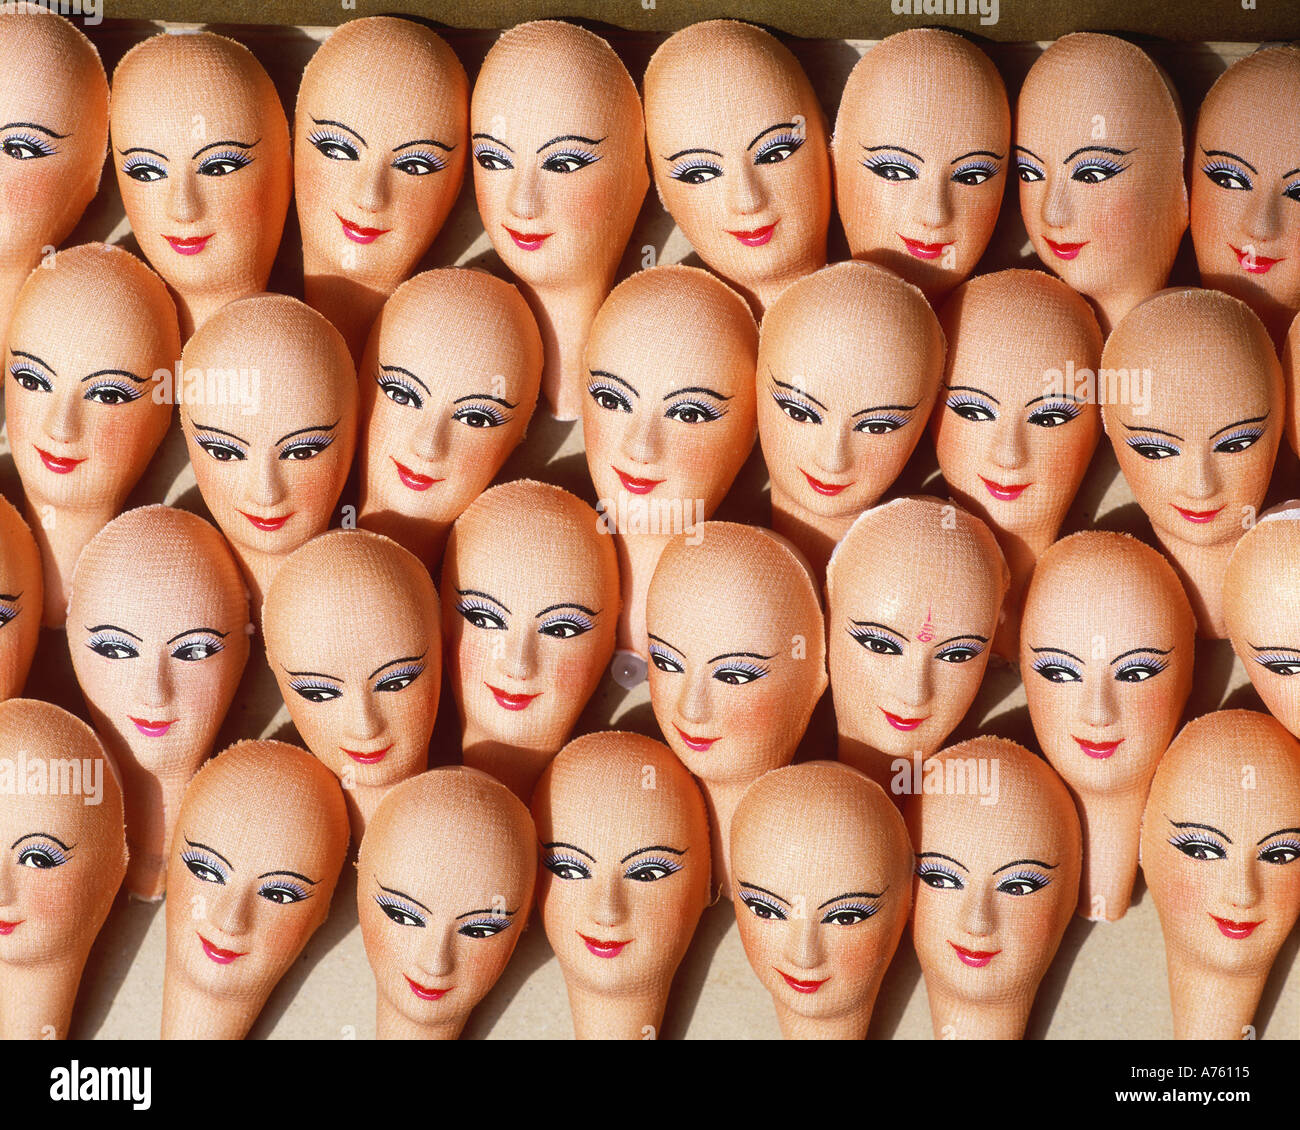 Doll heads in doll factory Bangkok, Thailand - Stock Image